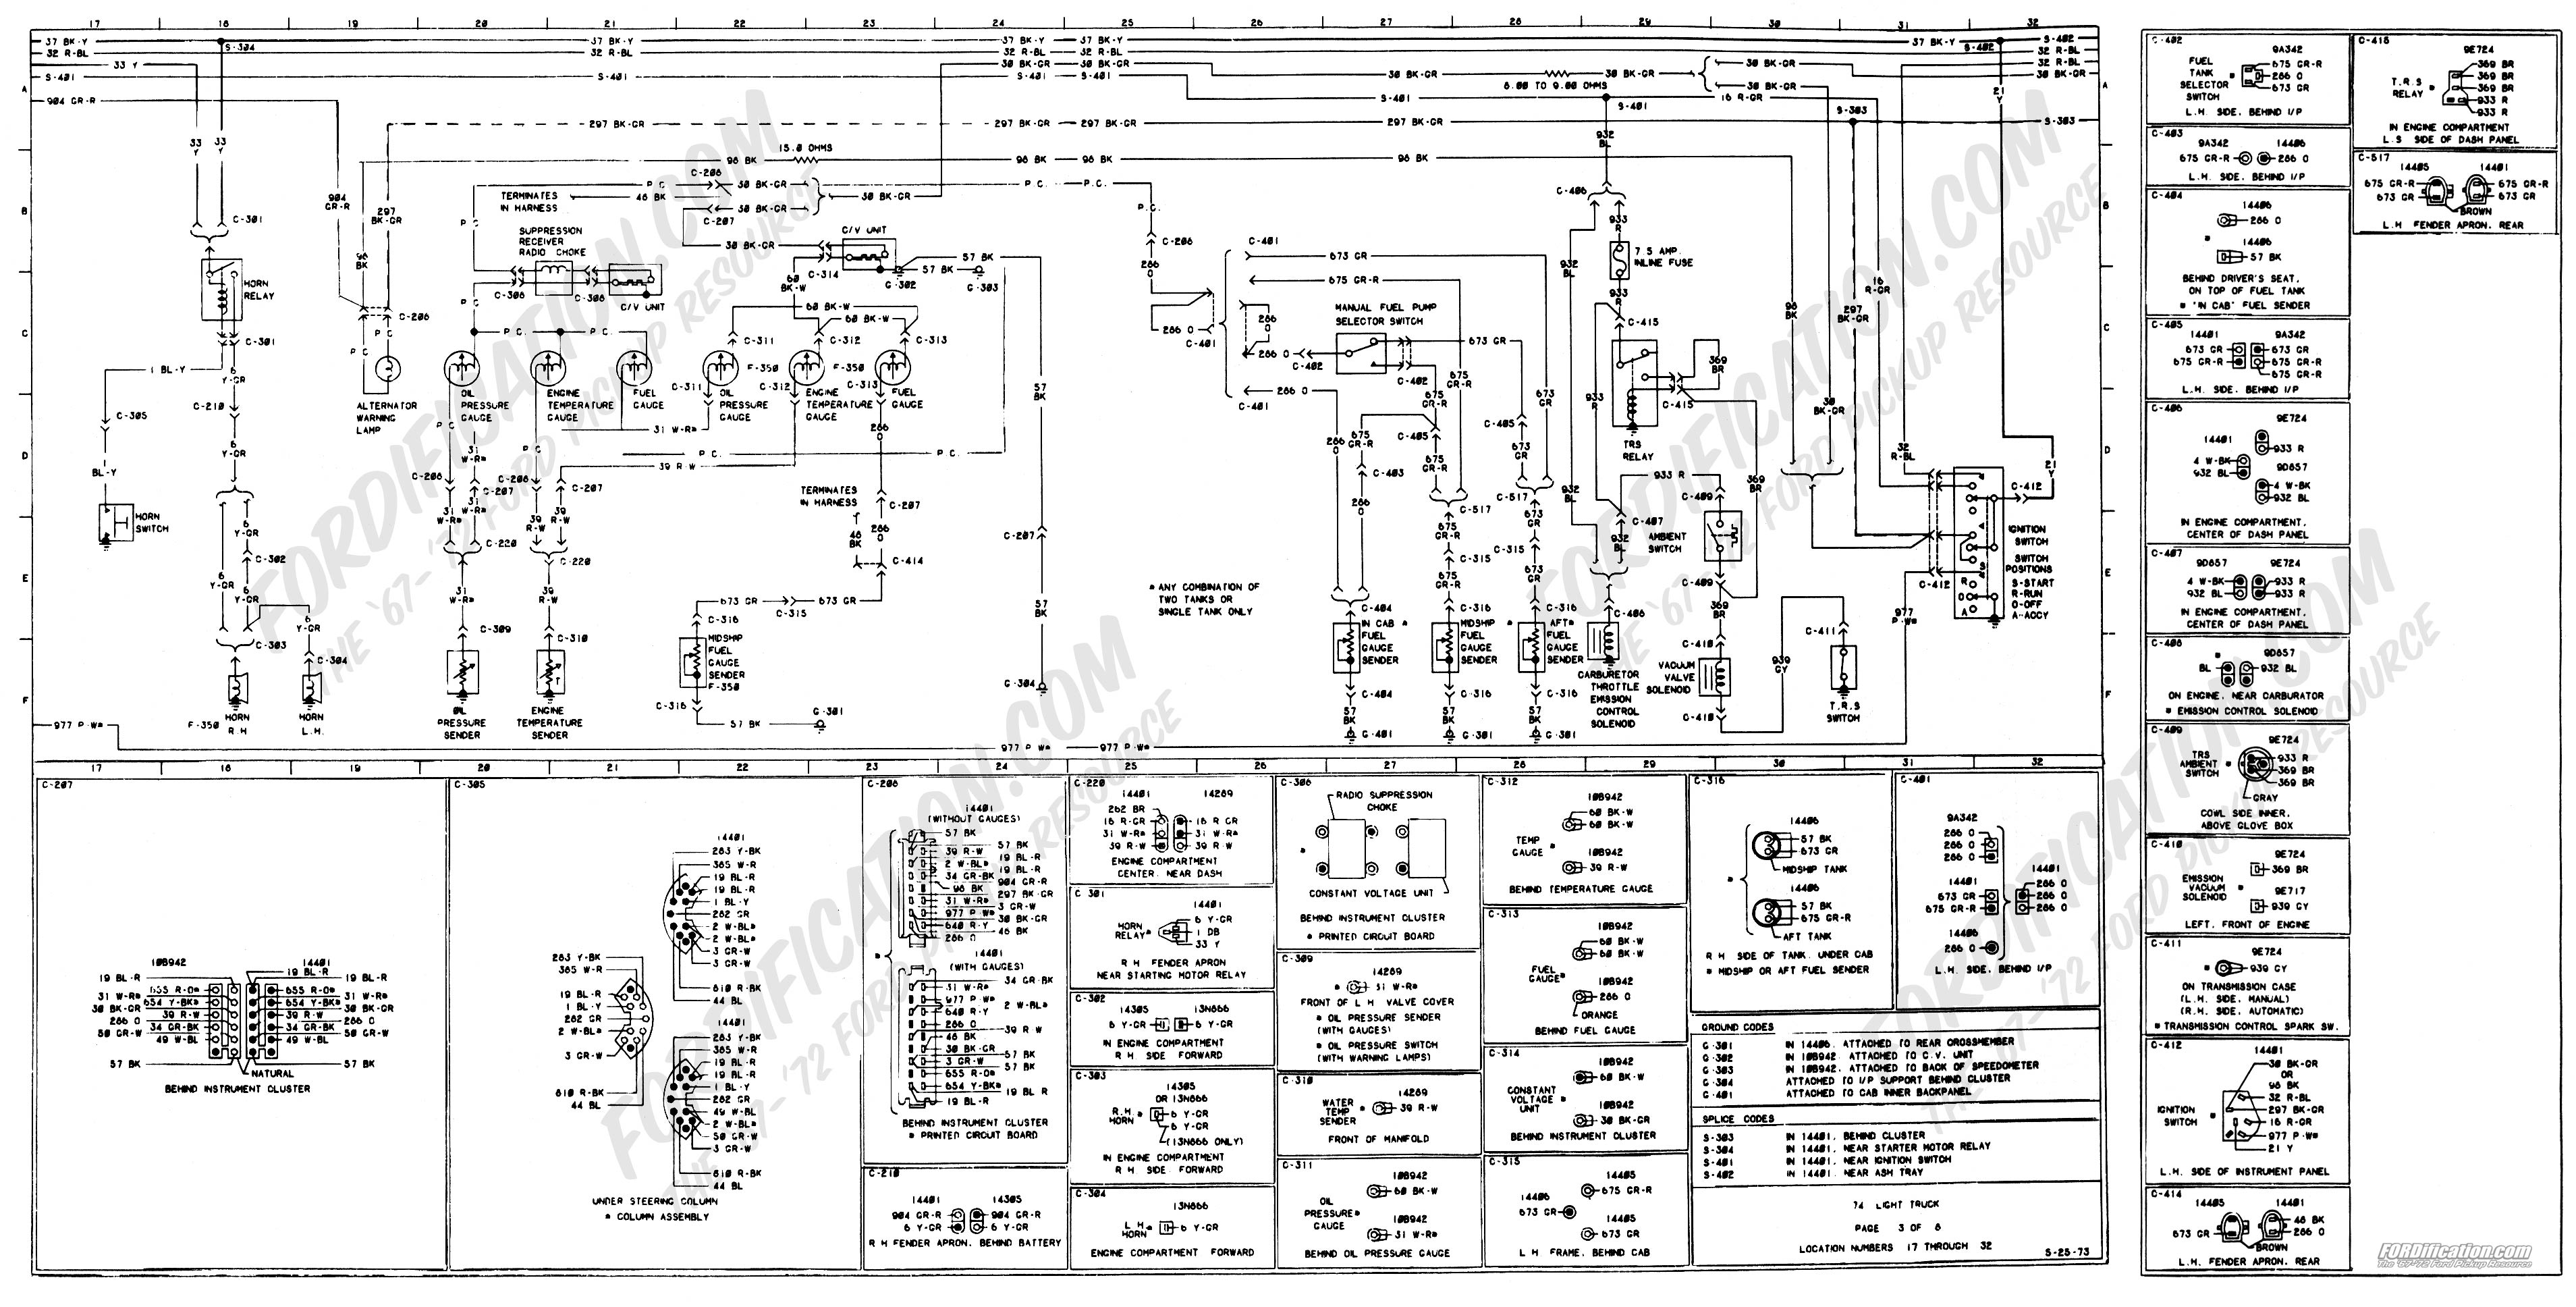 19731979 Ford Truck Wiring Diagrams Schematics FORDificationnet